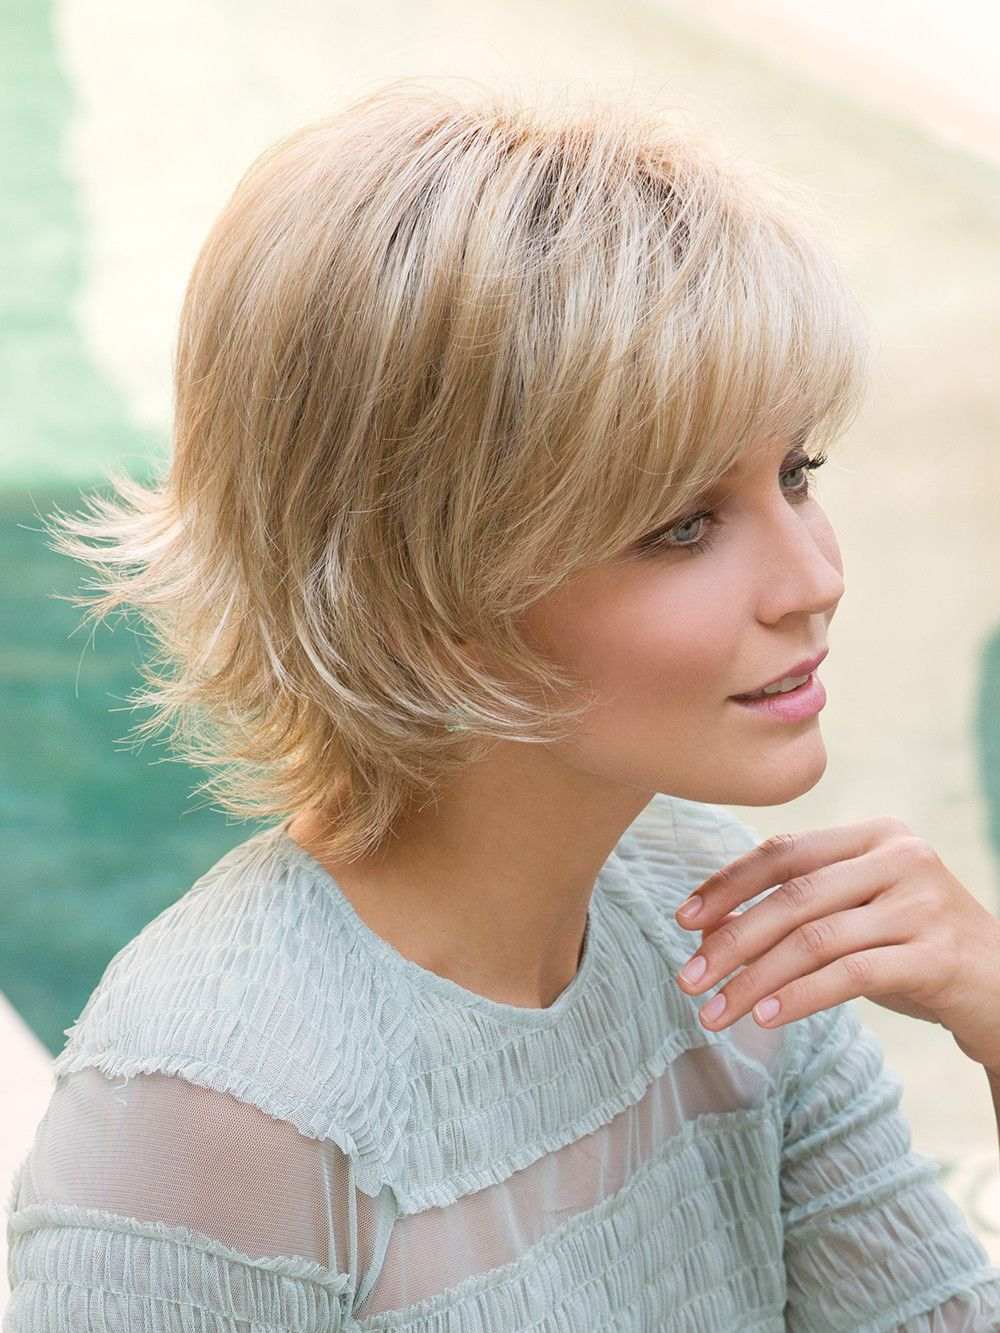 Sky synthetic wig basic cap hair pinterest dark blonde